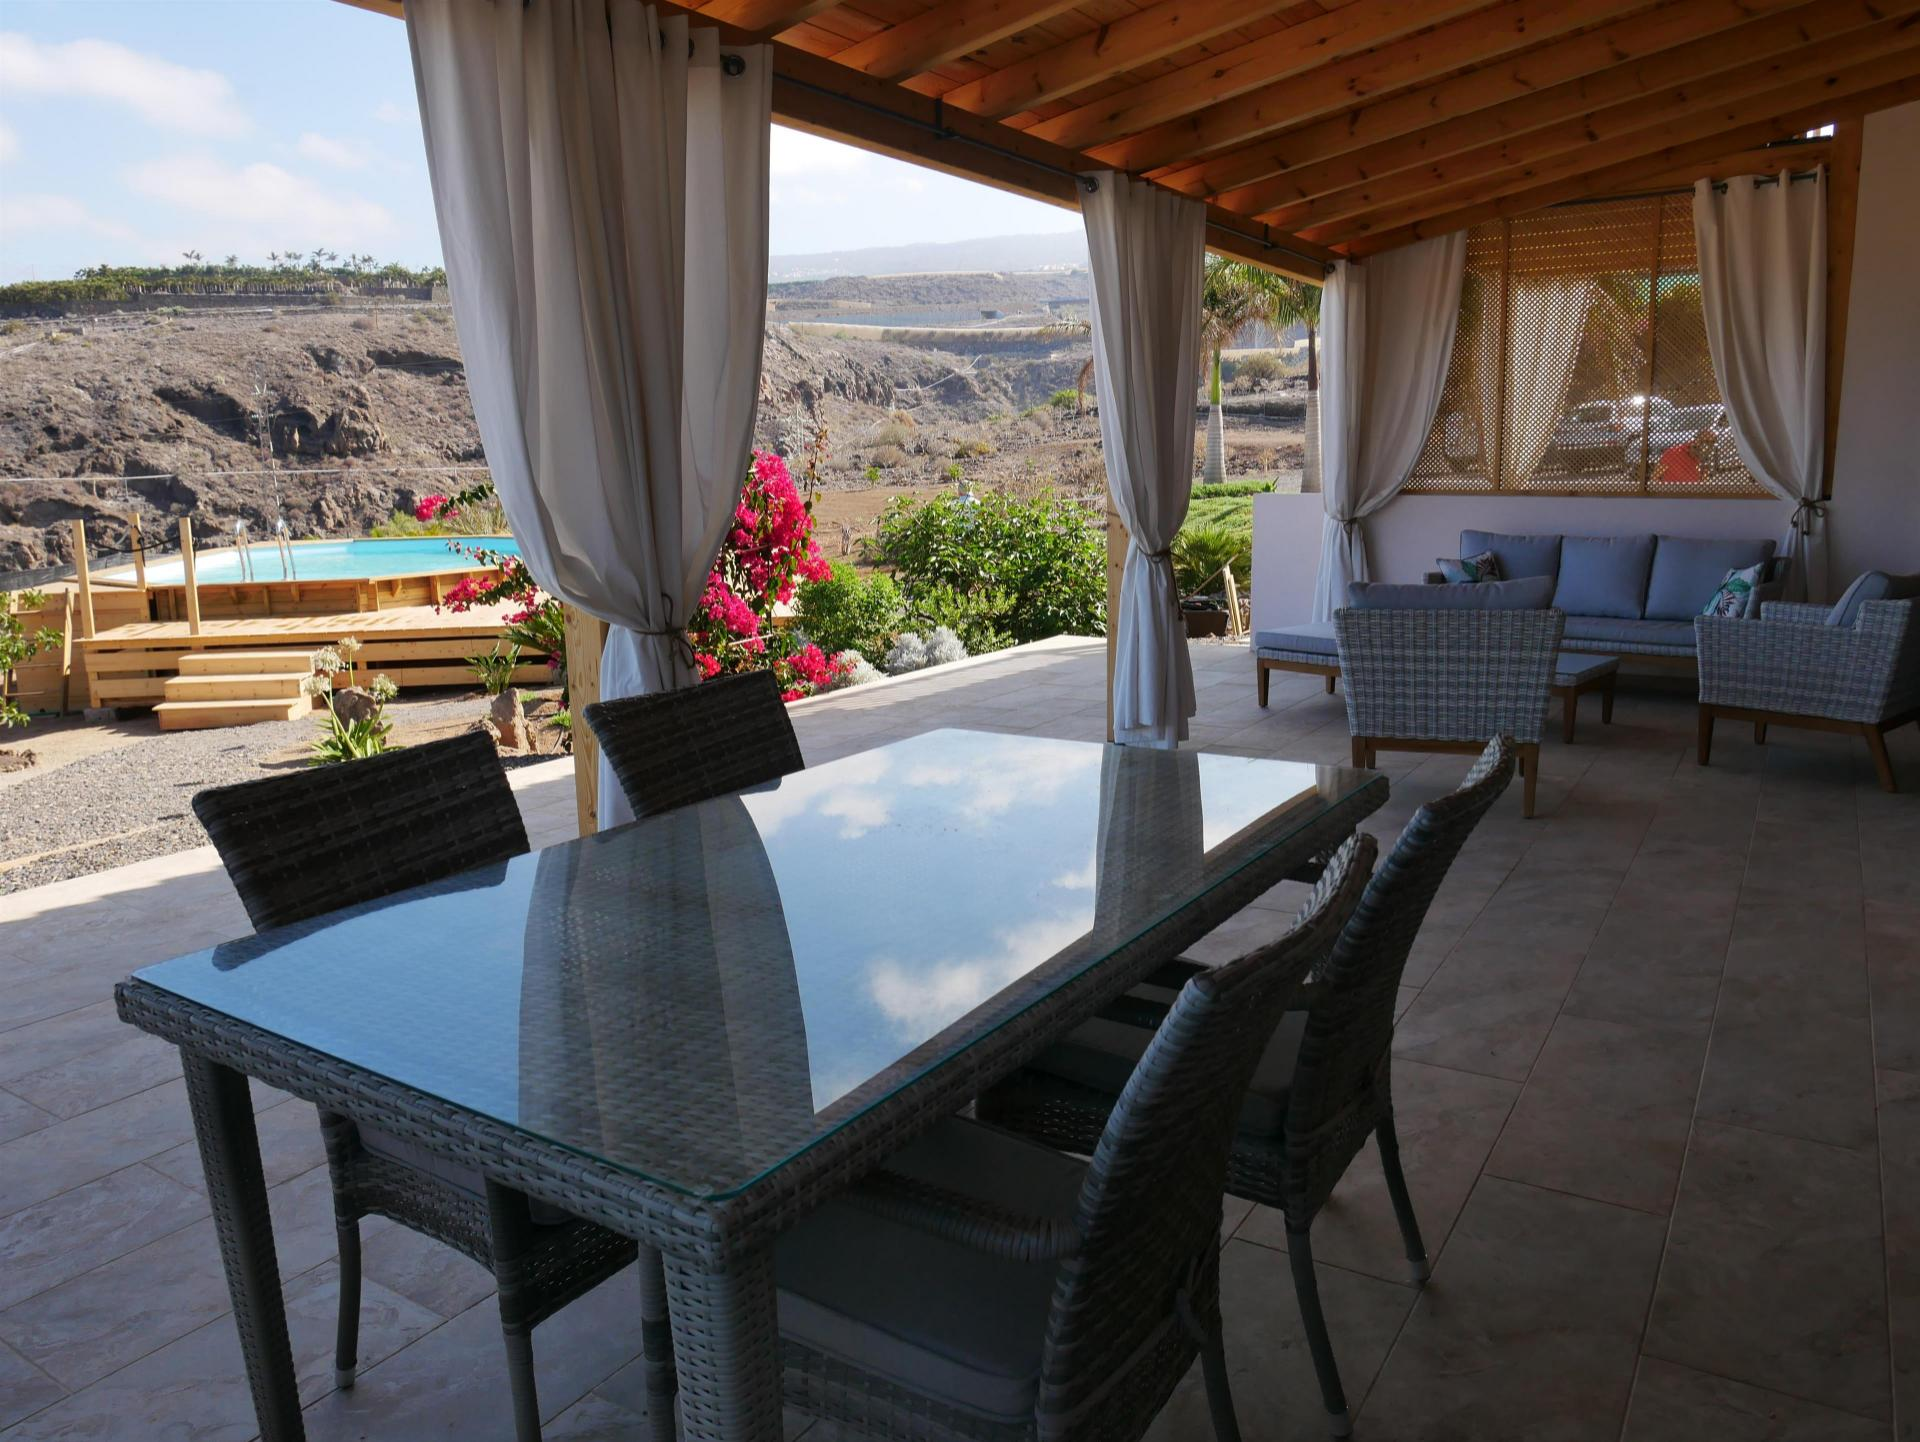 This beautiful country house offers you amazing views over the ocean and mountains. .... more info